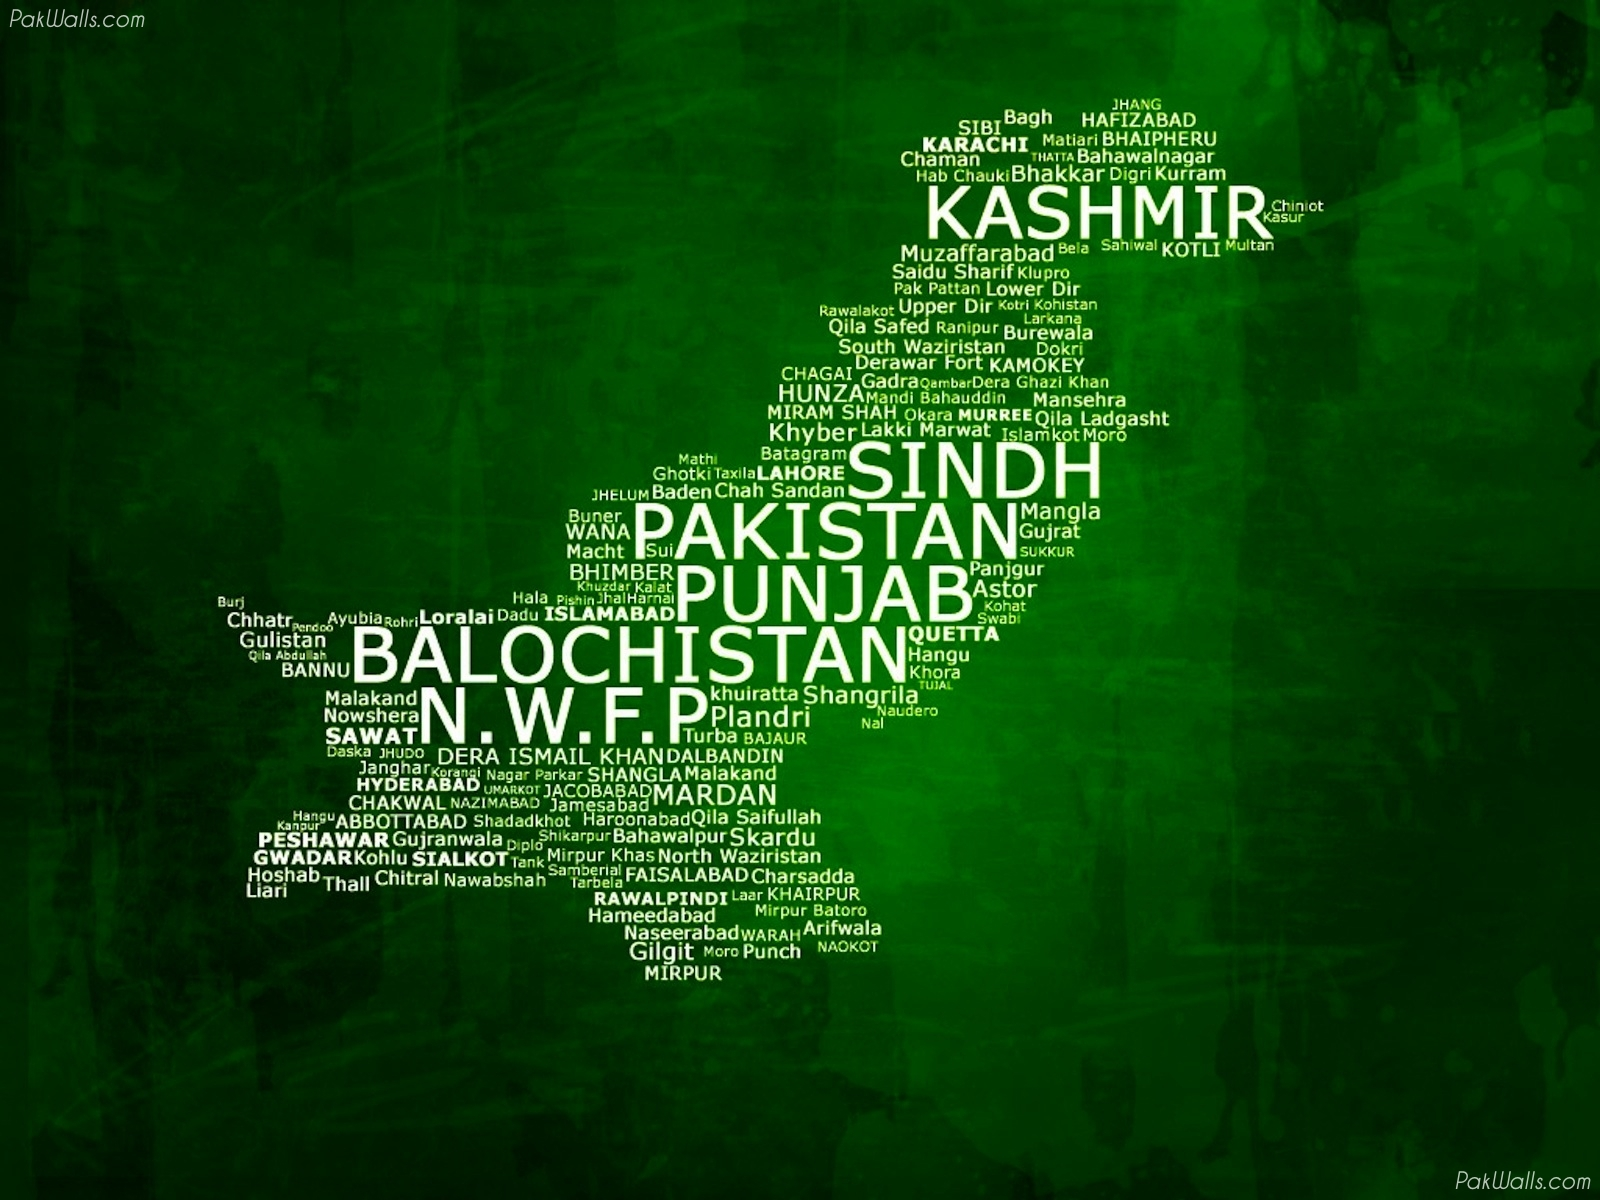 26 Beautiful Pakistan Independence Day Wallpapers 2012 Wallpapers 1600x1200